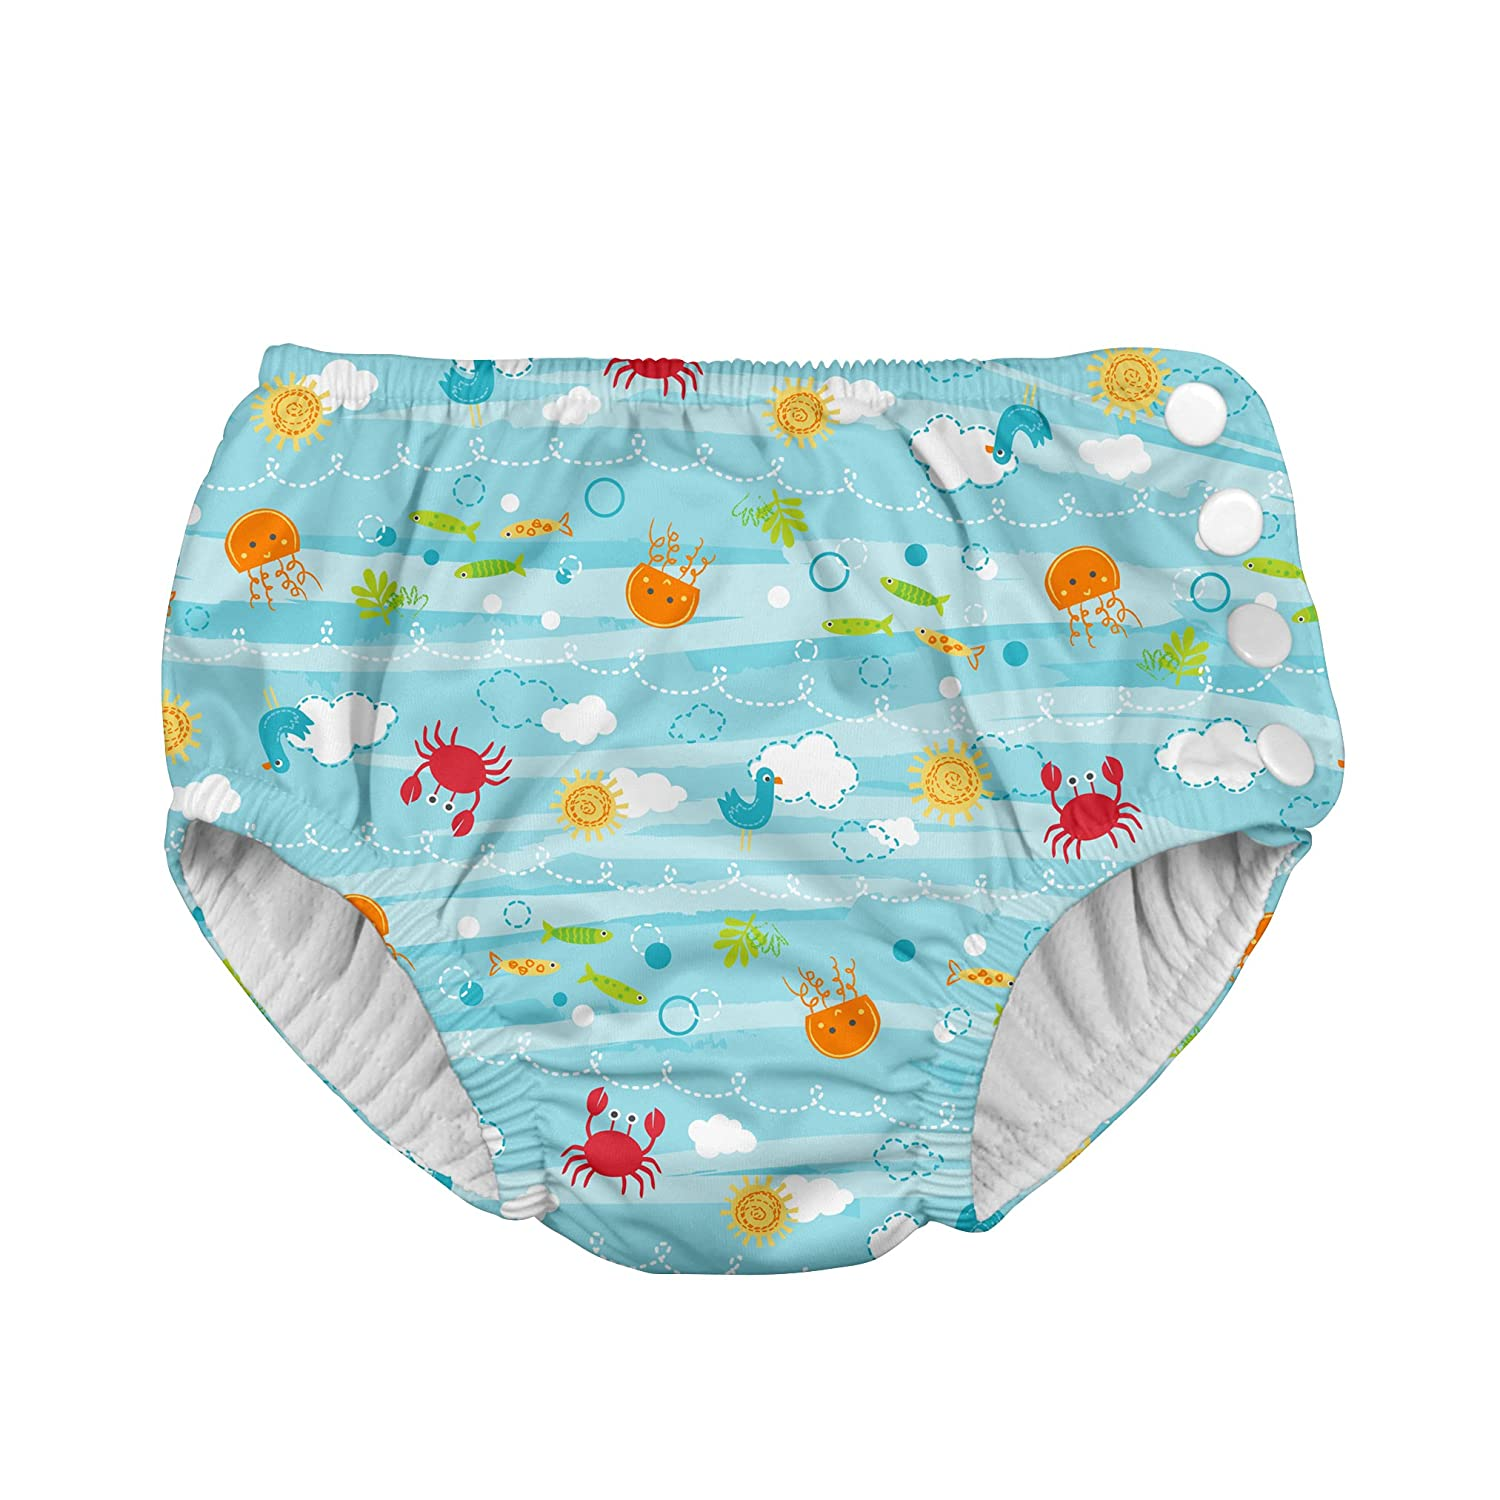 i play Snap Reusable Swimsuit Diaper, 4T, 3 to 4 Years, Light Aqua Sea Friends JellyBean/First Steps 721150